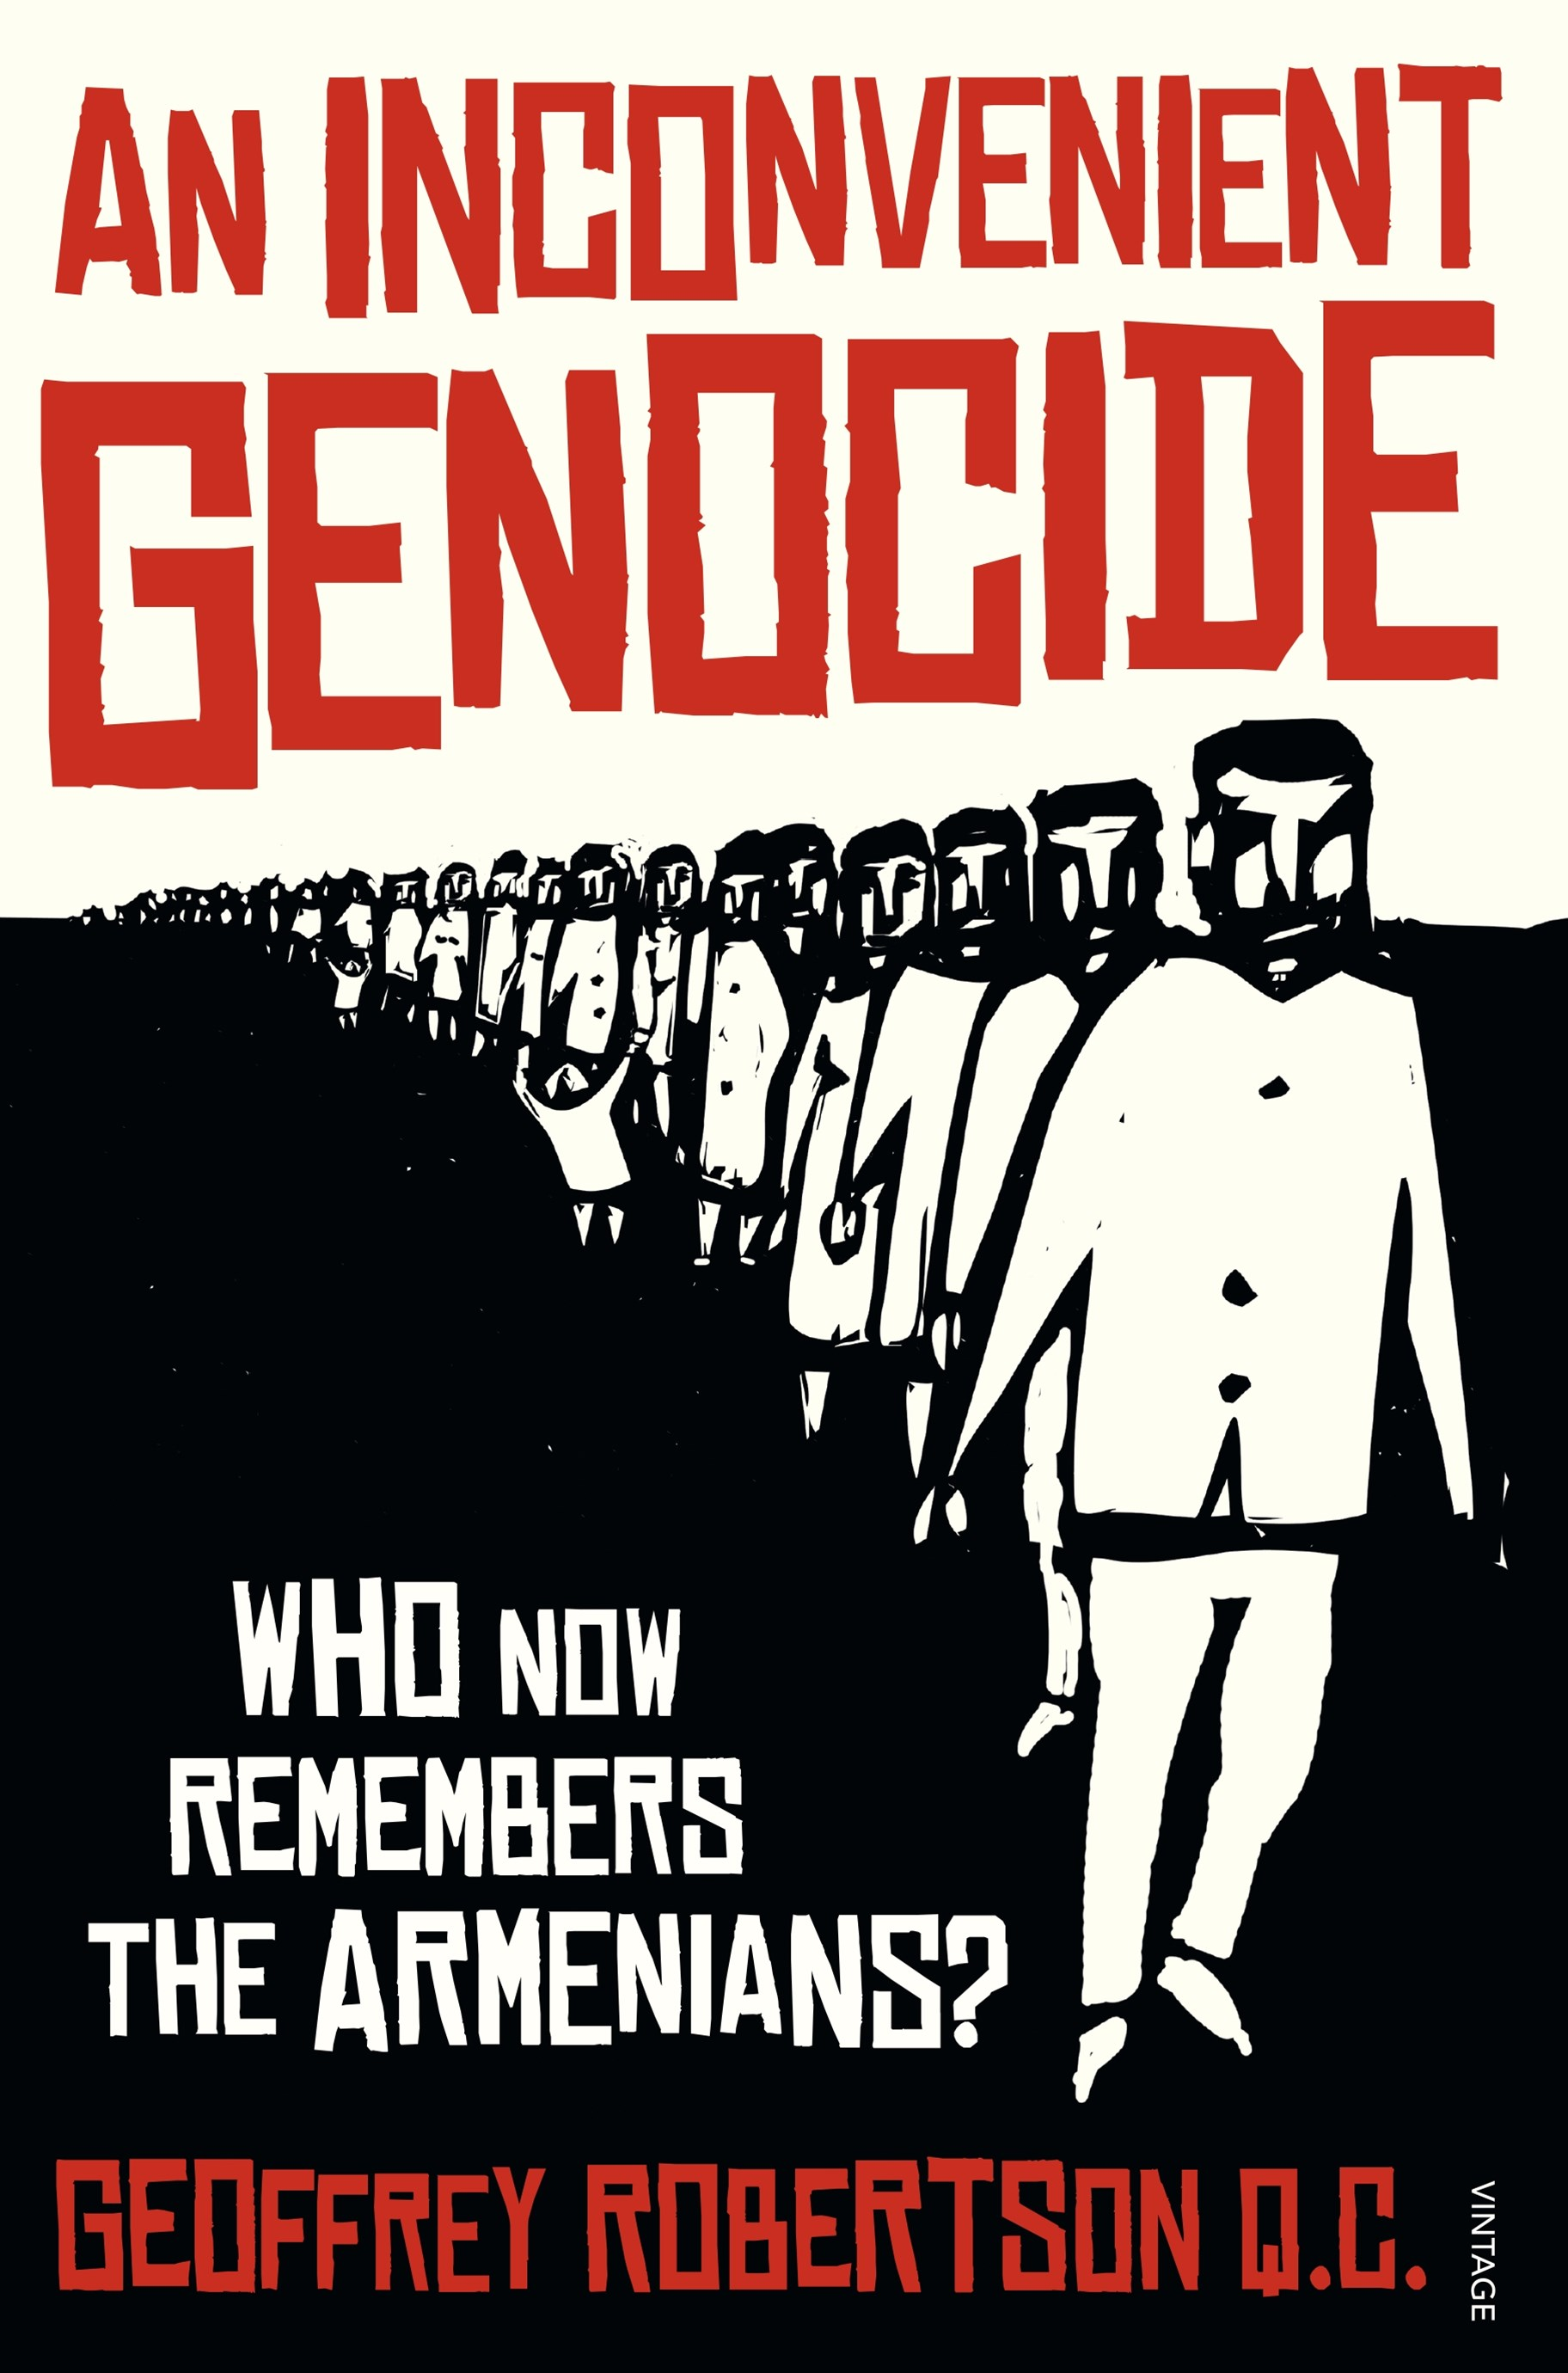 Inconvenient Genocide: Who Now Remembers the Armenians?, An